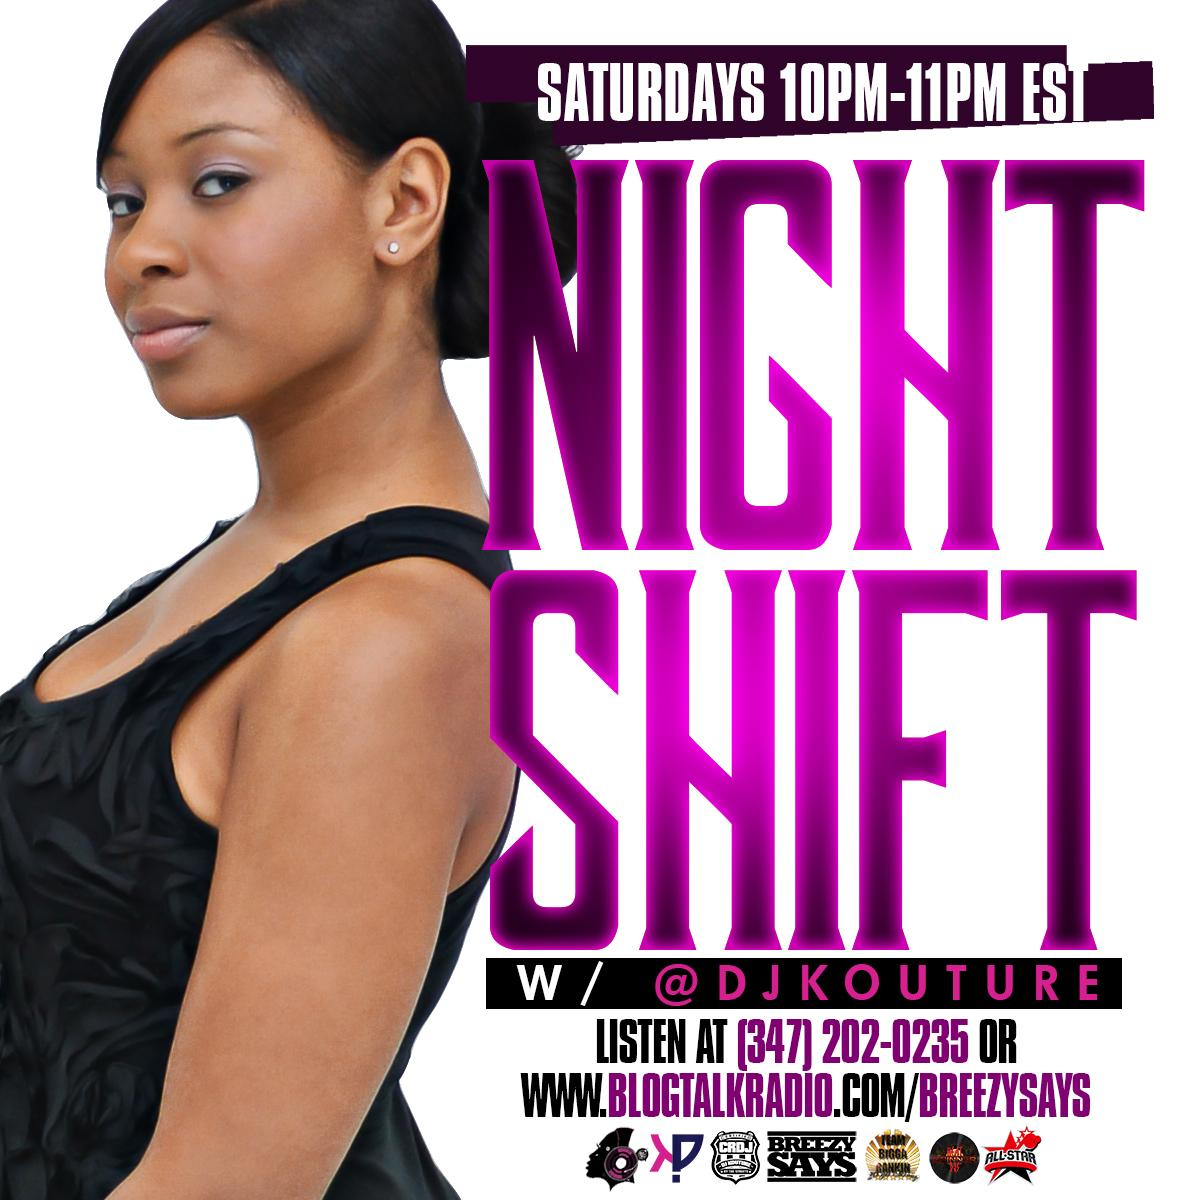 [http://t.co/FCgROeKhB4] Sat. 10:00 PMEDT | #NightShift w/ @DJKouture on @BreezysaysRadio http://t.co/4aId9D7T8J | call 3472020235